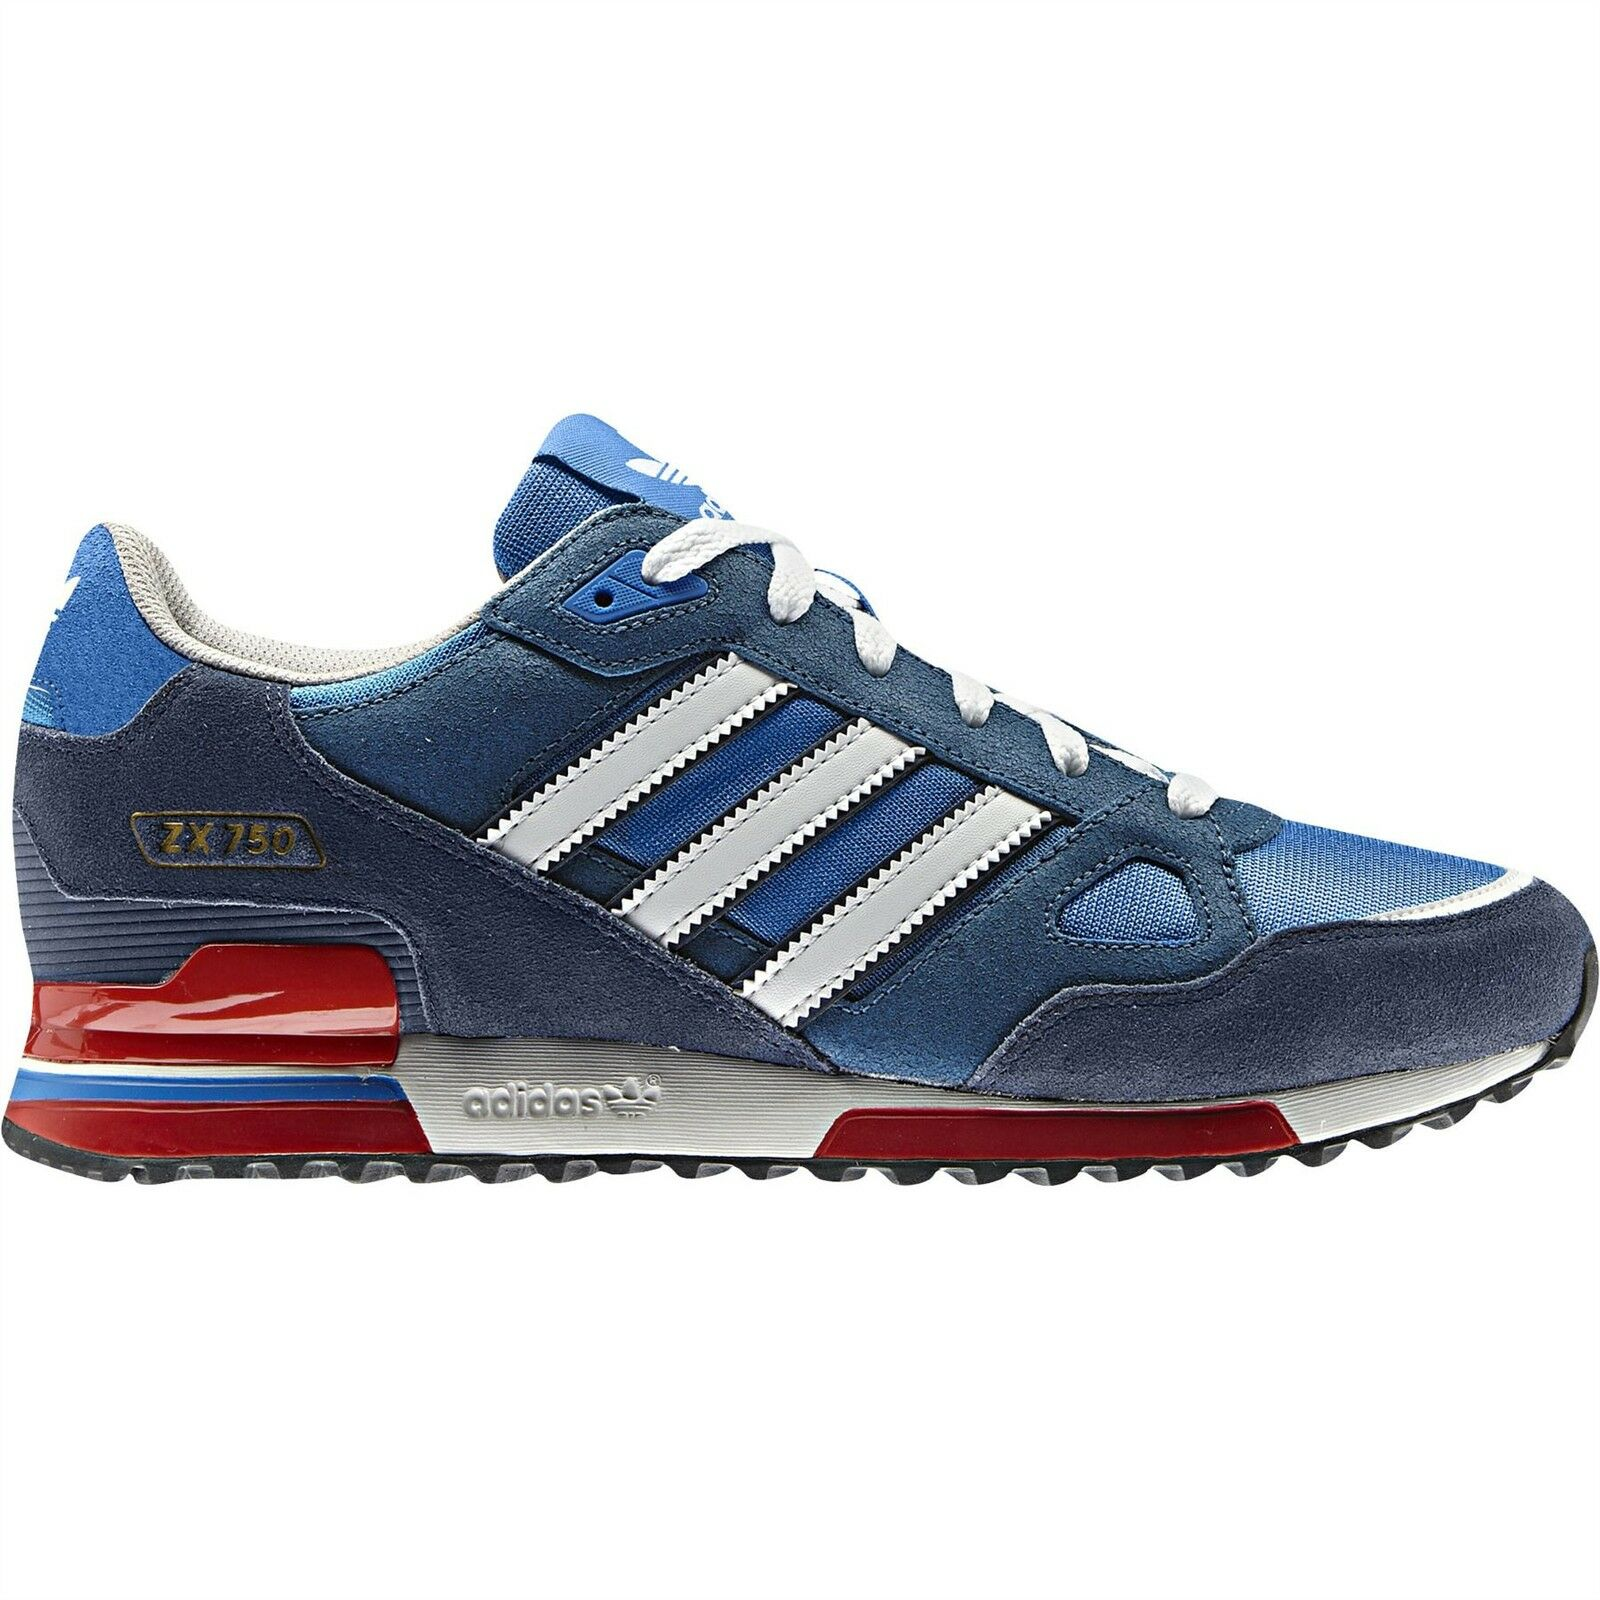 adidas ORIGINALS ZX 750 TRAINERS bleu rouge SNEAKERS Chaussures 7 8 8.5 9 9.5 10 11 12